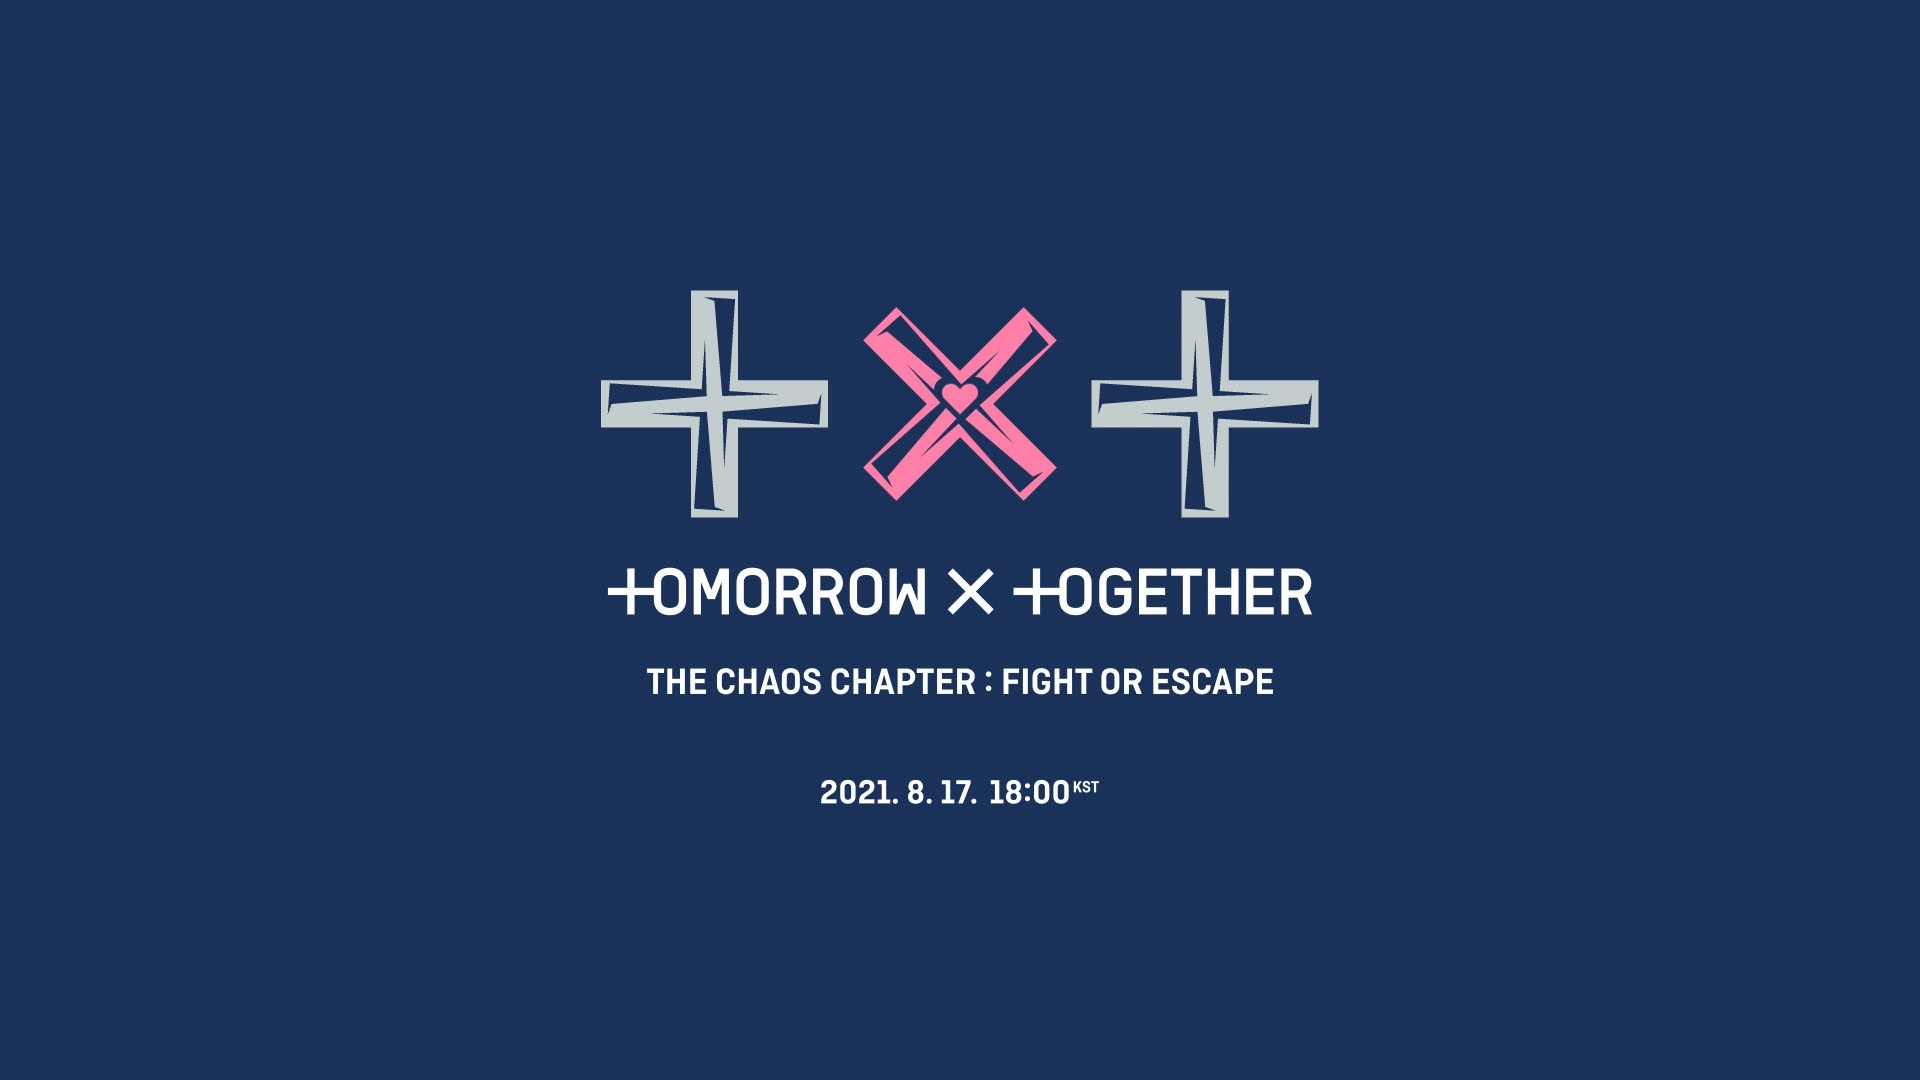 TXT (투모로우바이투게더) - The Chaos Chapter: FIGHT OR ESCAPE